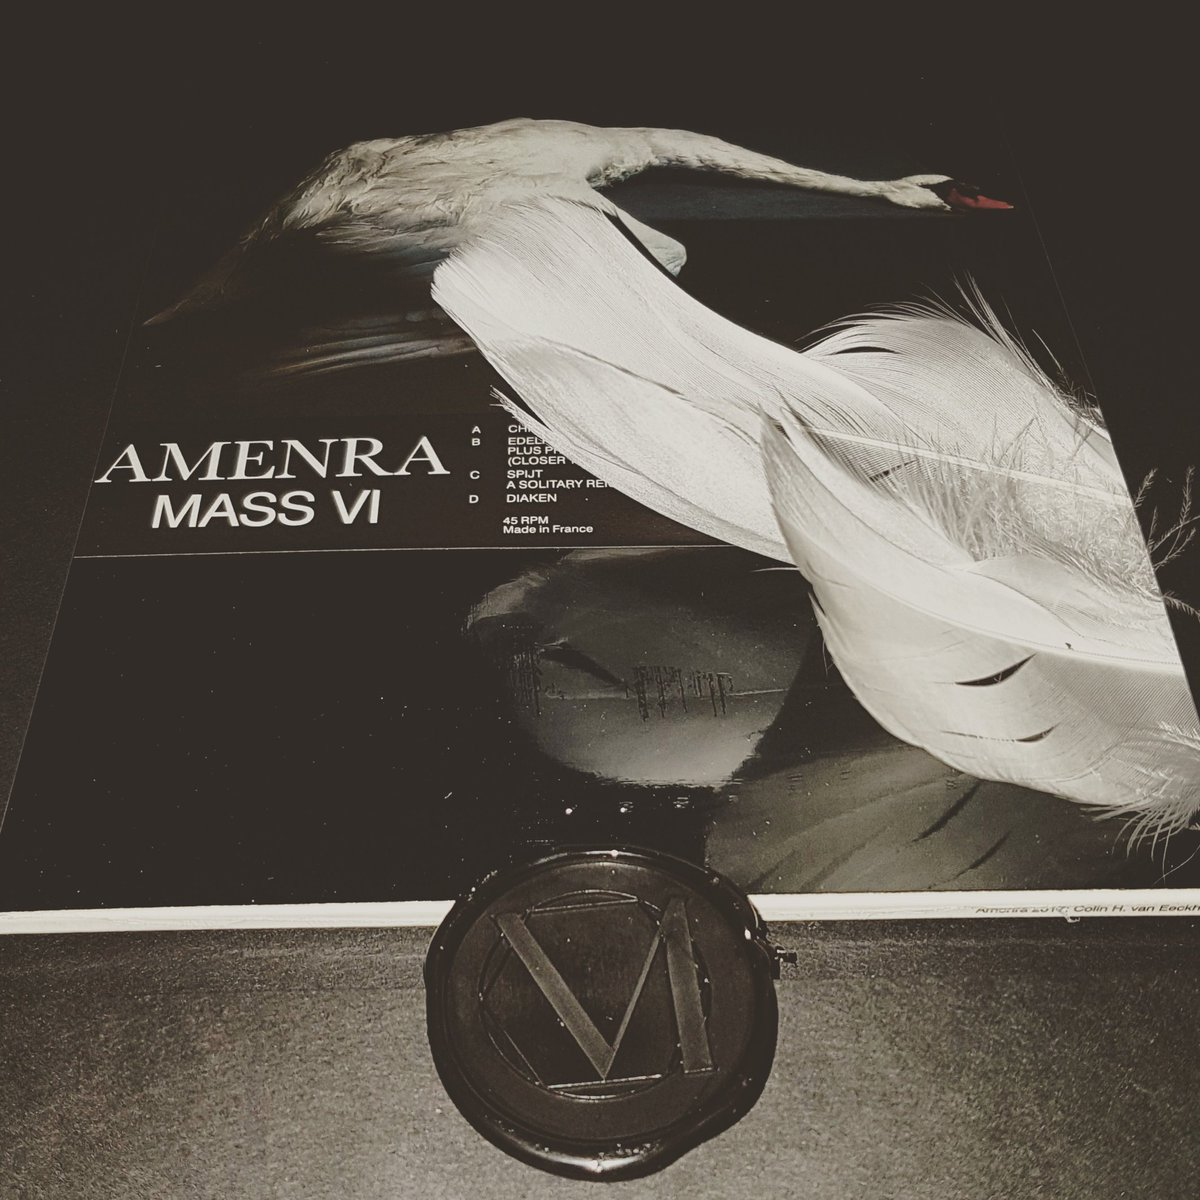 Album of the year. Packaging of the year. Special album launch show edition of Amenra - Mass VI. Number 033/300. @churchofra #Amenra #massvi #chruchofra #le7eoeil<br>http://pic.twitter.com/xynyunltBY